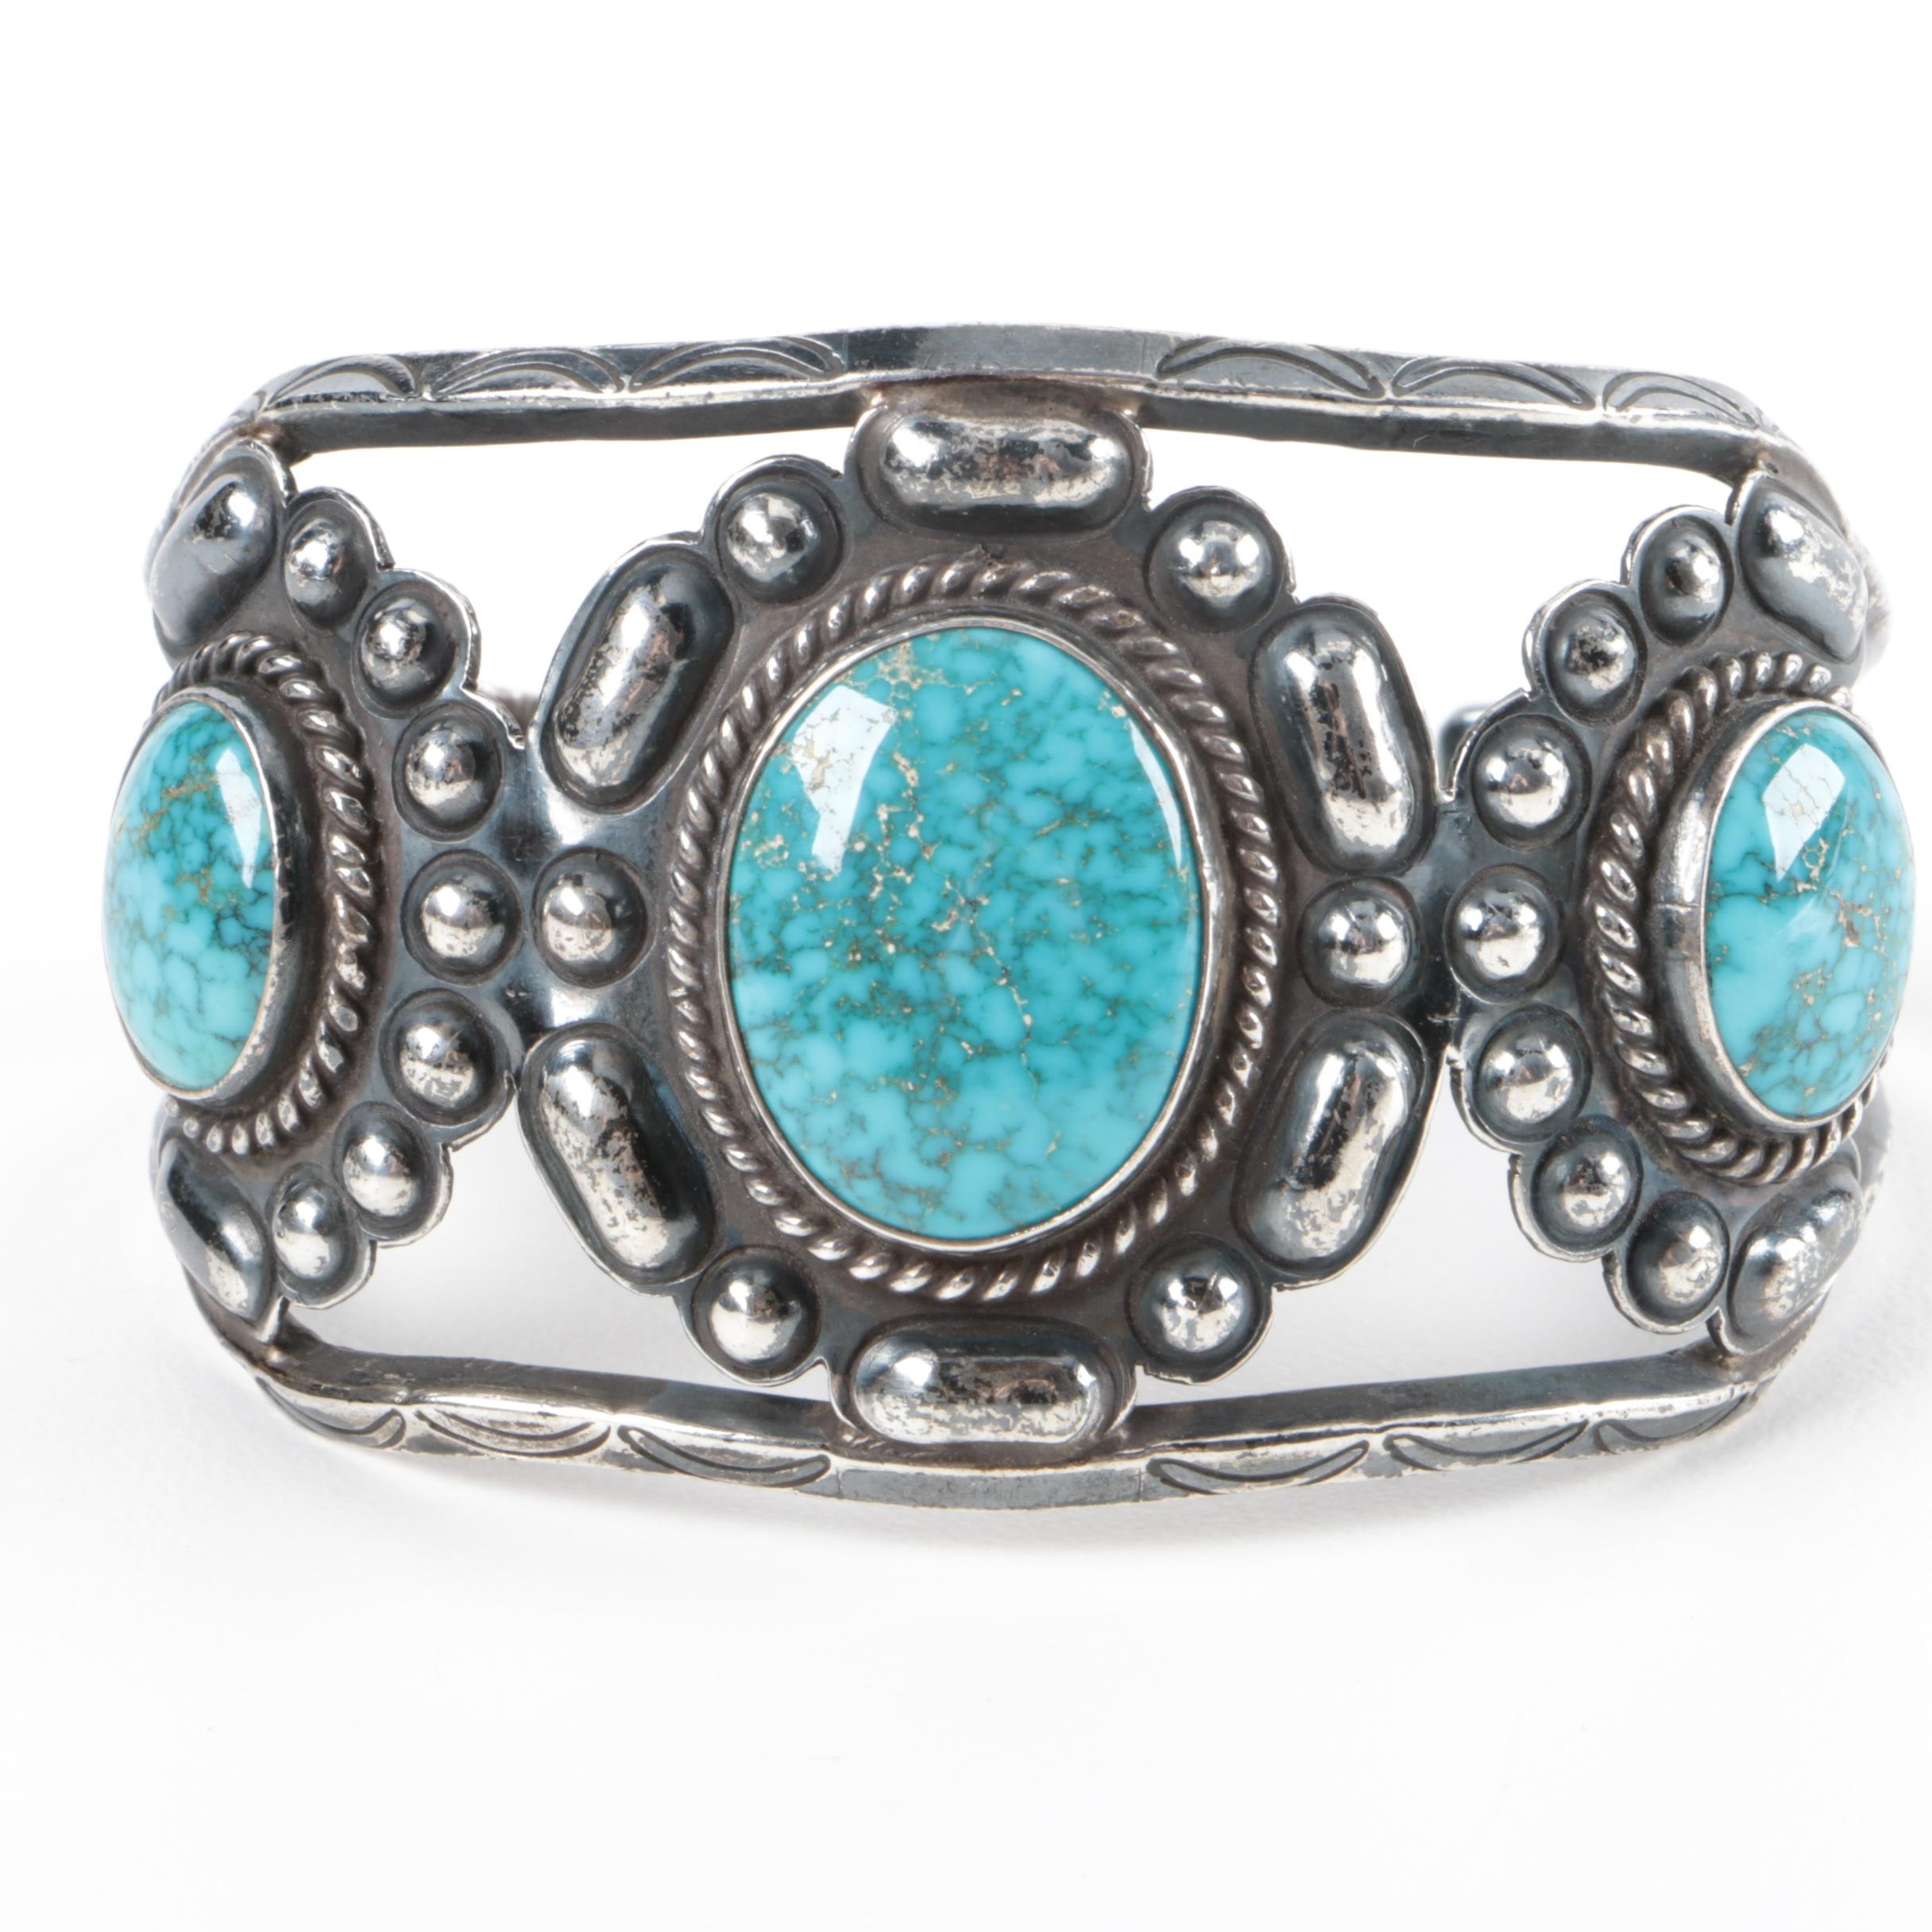 Signed Sterling Silver and Turquoise Old Pawn Cuff Bracelet